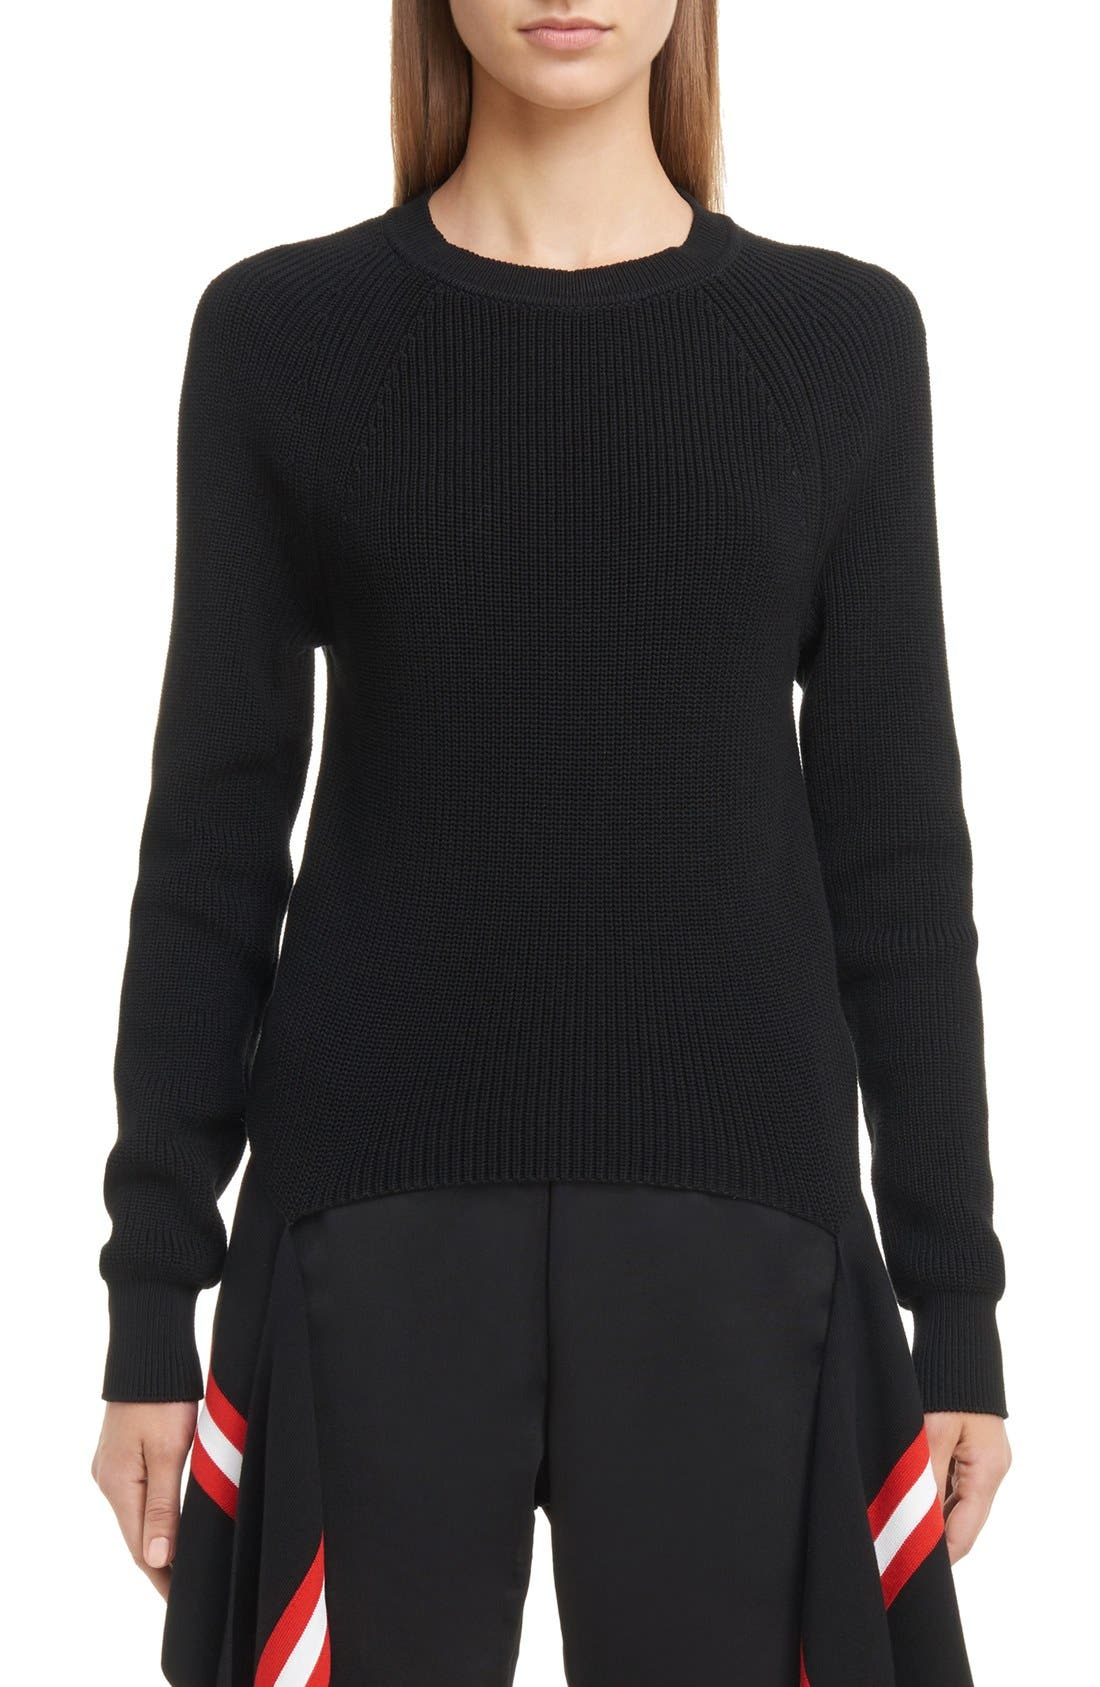 GIVENCHY Tricolor Sweater